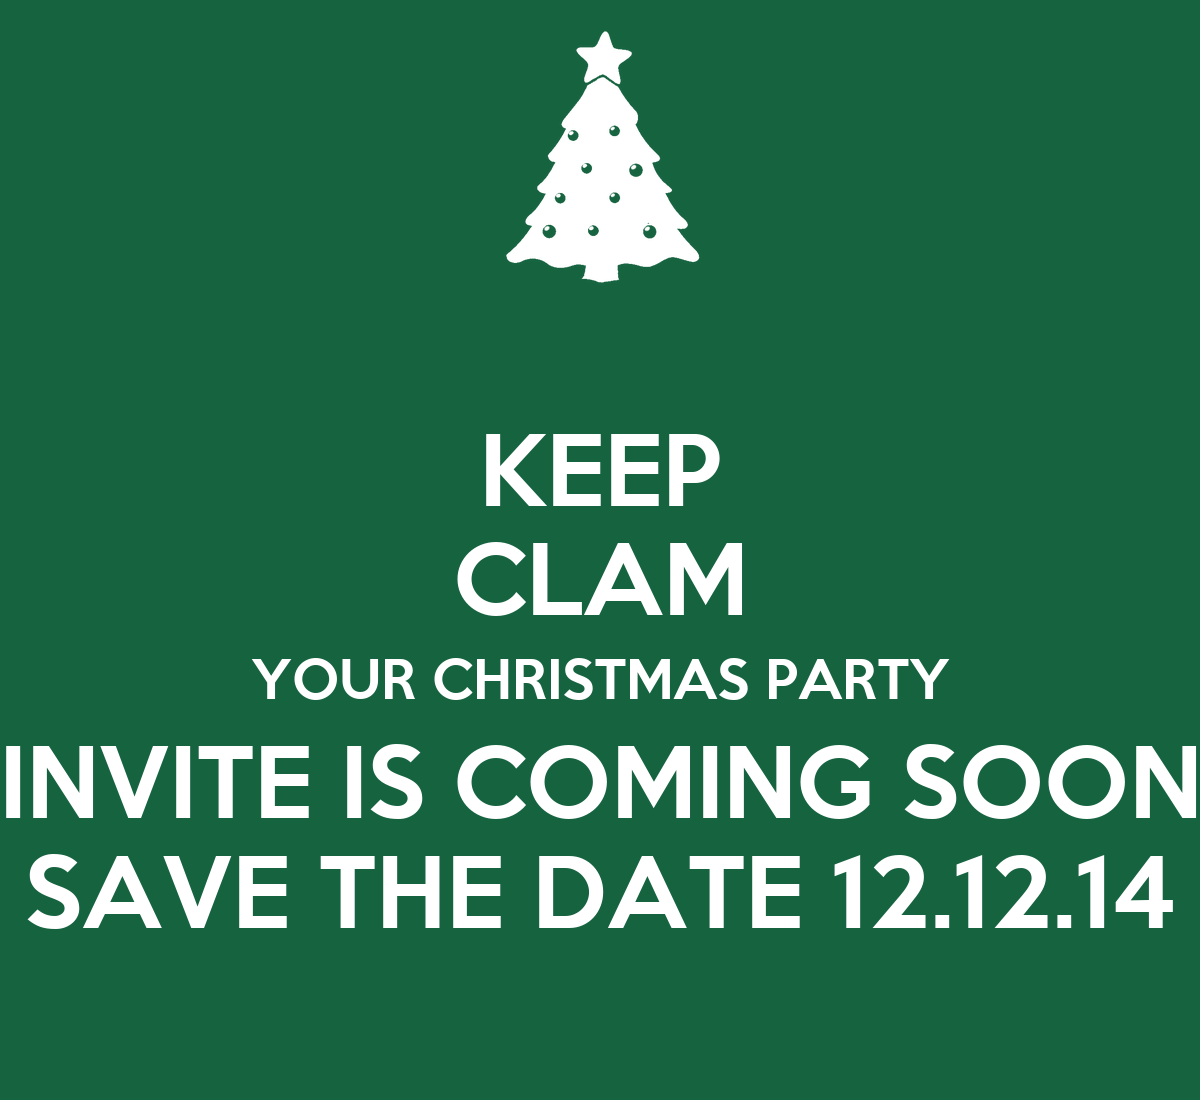 Keep Clam Your Christmas Party Invite Is Coming Soon Save The Date 12 12 14 Poster Tall Guy Keep Calm O Matic